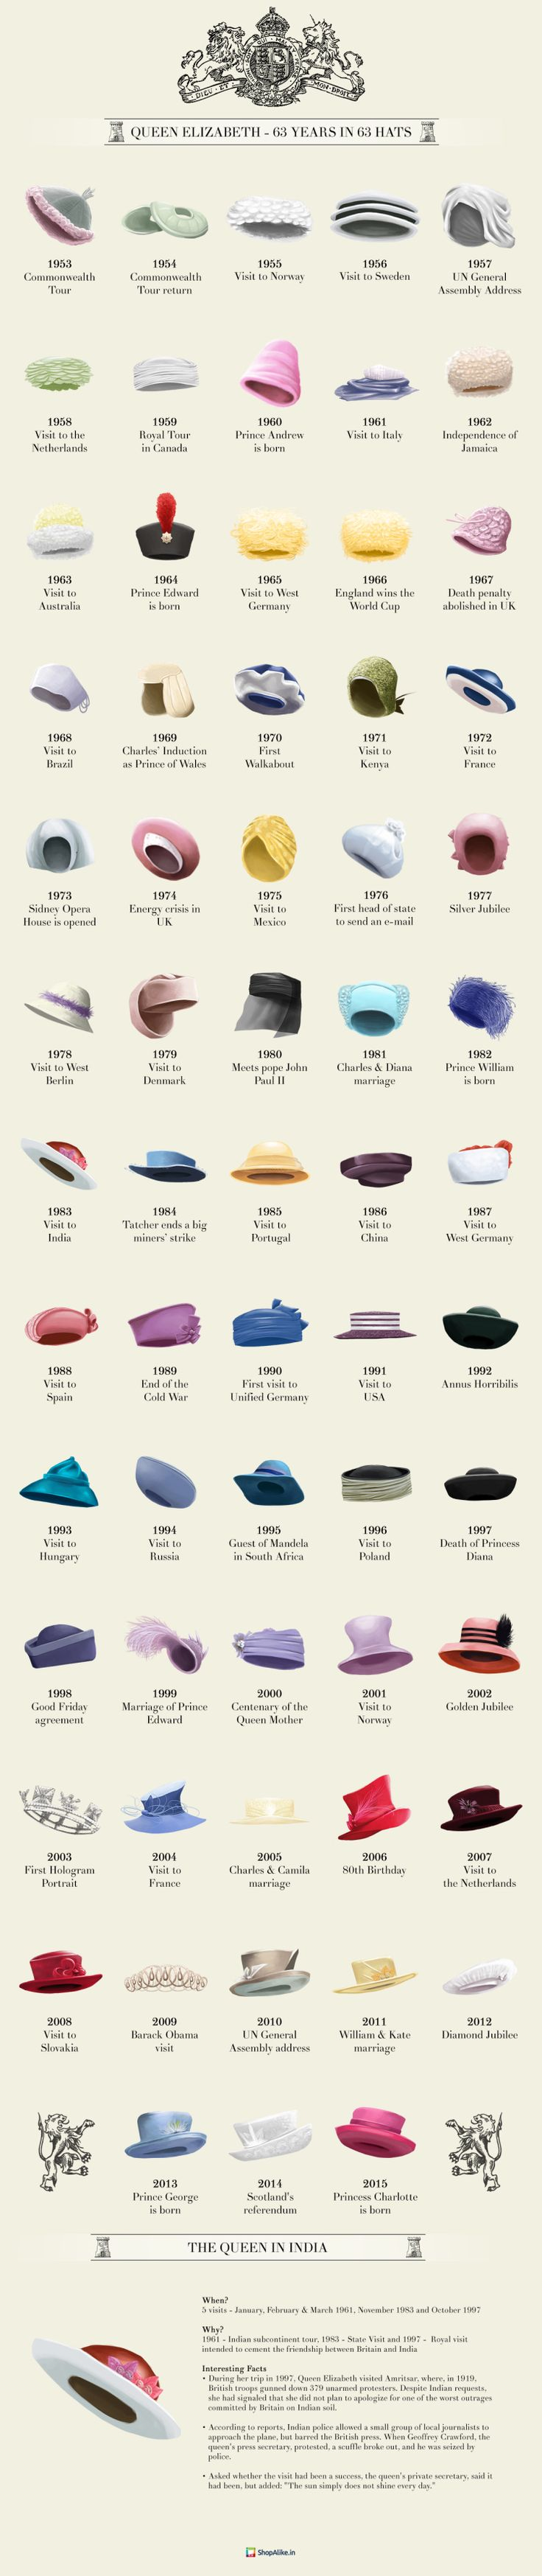 The Queen Of Hats   Info-graphic showing an important milestone from each year of Queen Elizabeth II reign, and the hat she was wearing on those dates. #millinery #hatacademy